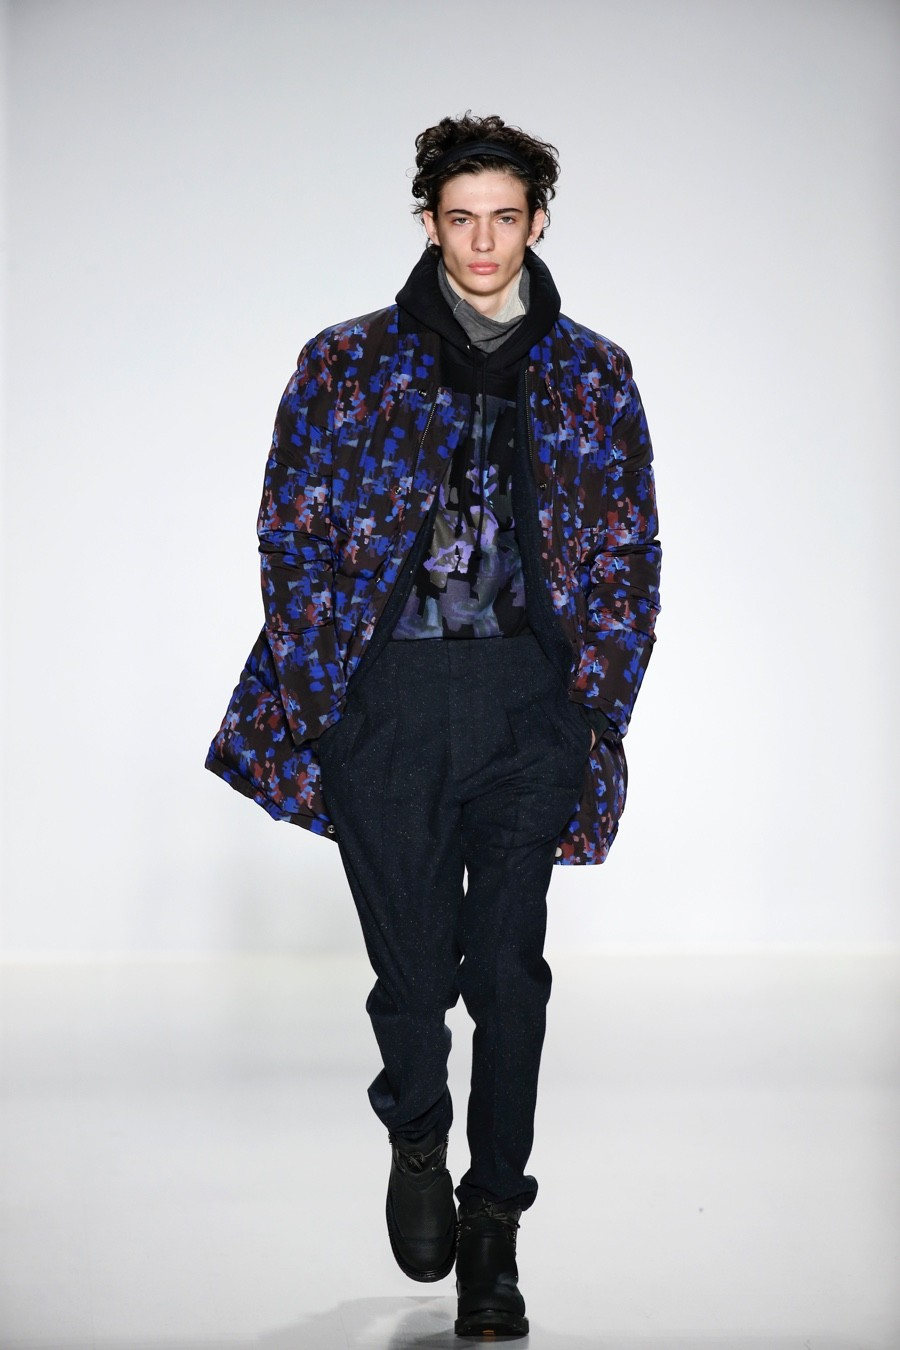 Richard Chai Embraces 90s Inspired Downtown Cool Styles for Fall/Winter 2015 Menswear Collection